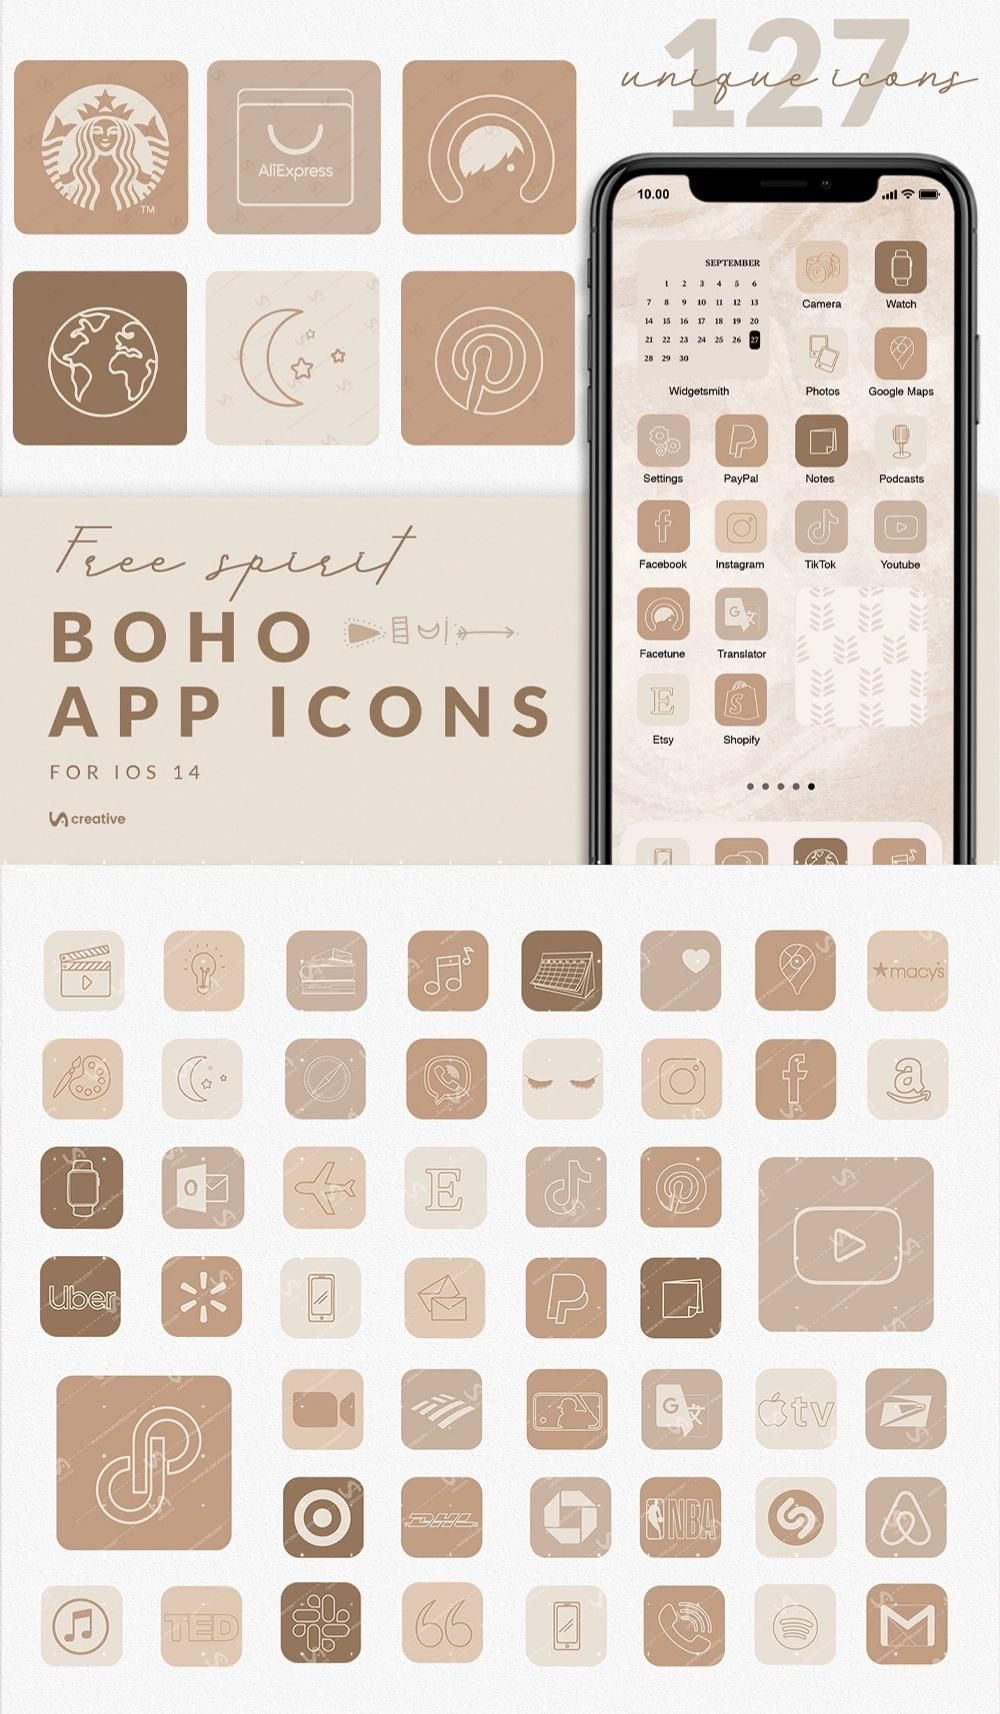 APP ICONS Free Spirit 127 ios14 Boho Aesthetic, Nude Neutral, App Covers, Icons Bundle